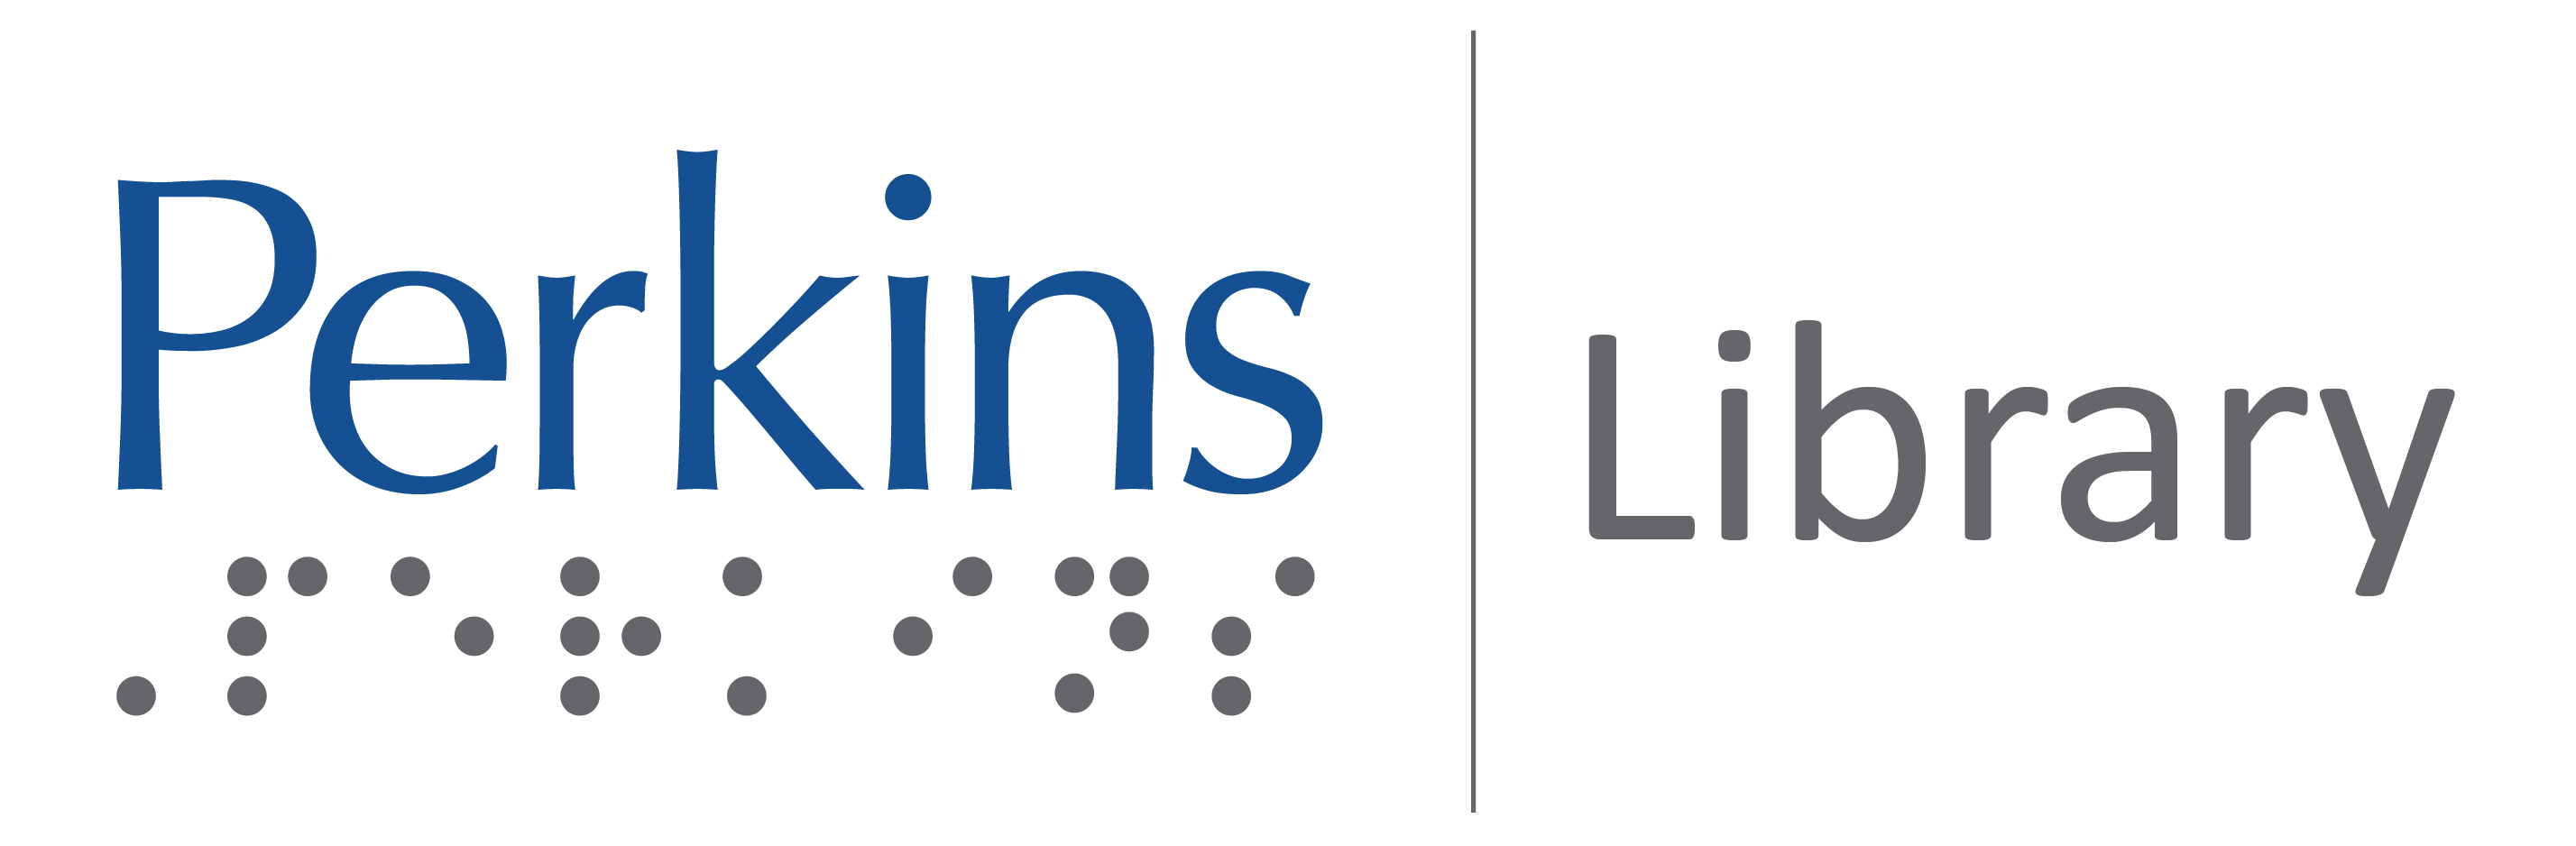 Perkins Library logo